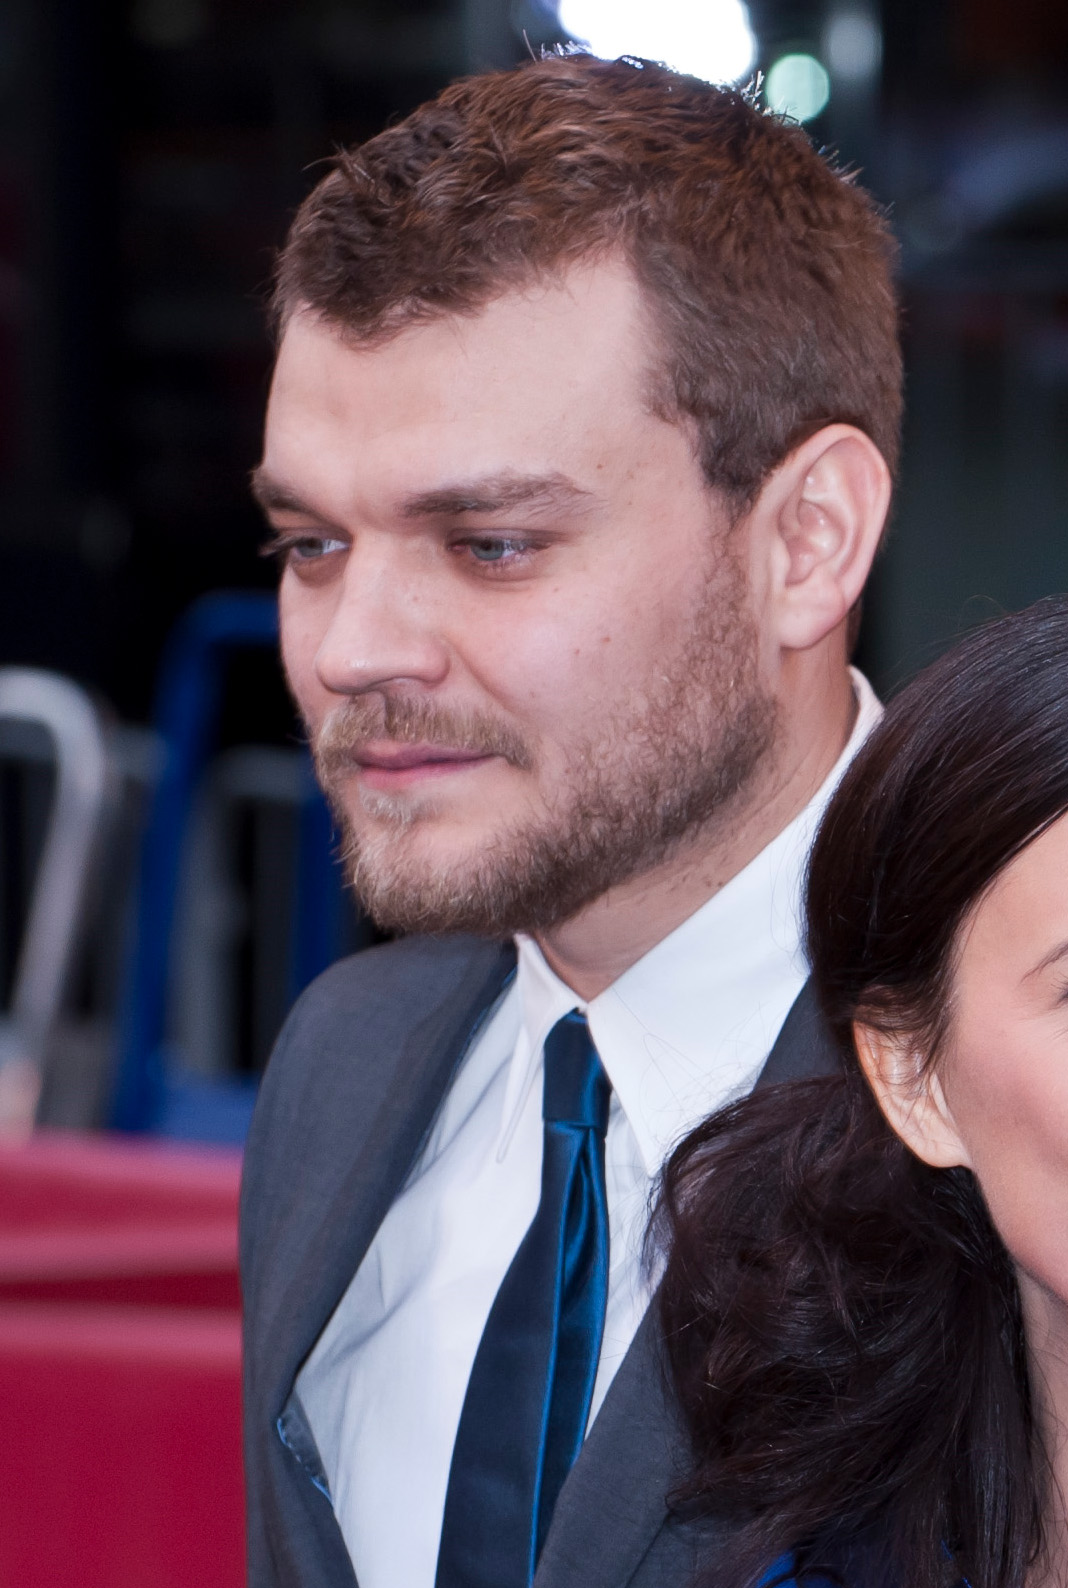 The 36-year old son of father Jacob A. Asbæk and mother Maria Patricia Tonn Pilou Asbæk in 2018 photo. Pilou Asbæk earned a  million dollar salary - leaving the net worth at  million in 2018